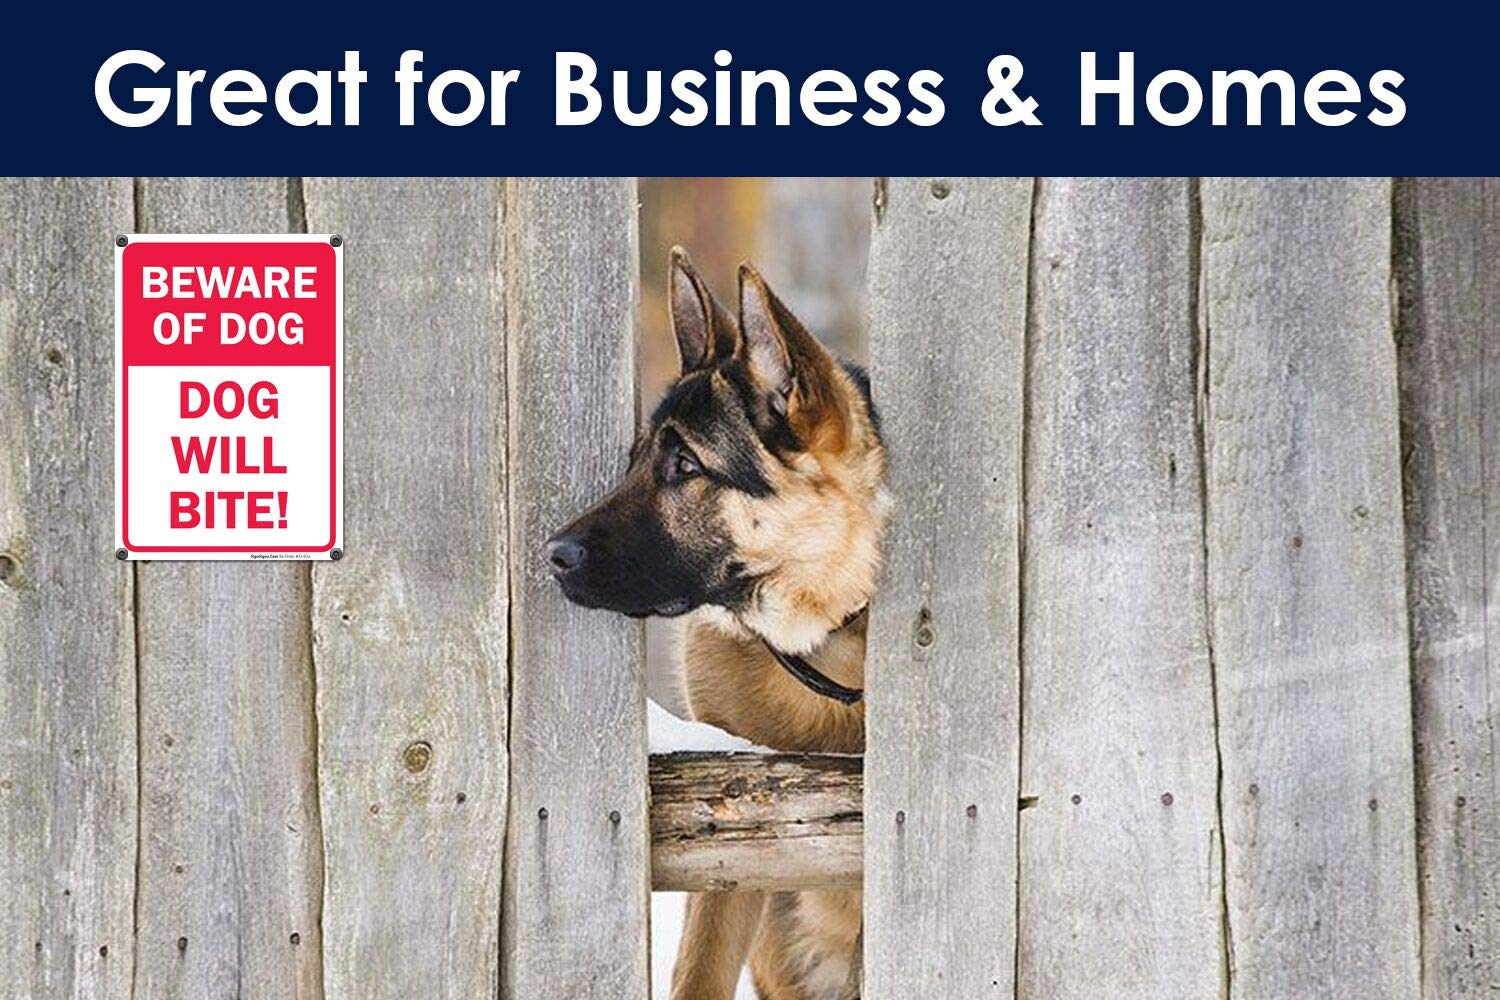 Beware of Dog Sign Dog Will Bite Sign 10x14 Rust Free .40 Aluminum UV Printed Easy to Mount Weather Resistant Long Lasting Ink Made in USA by SIGO SIGNS SI-834